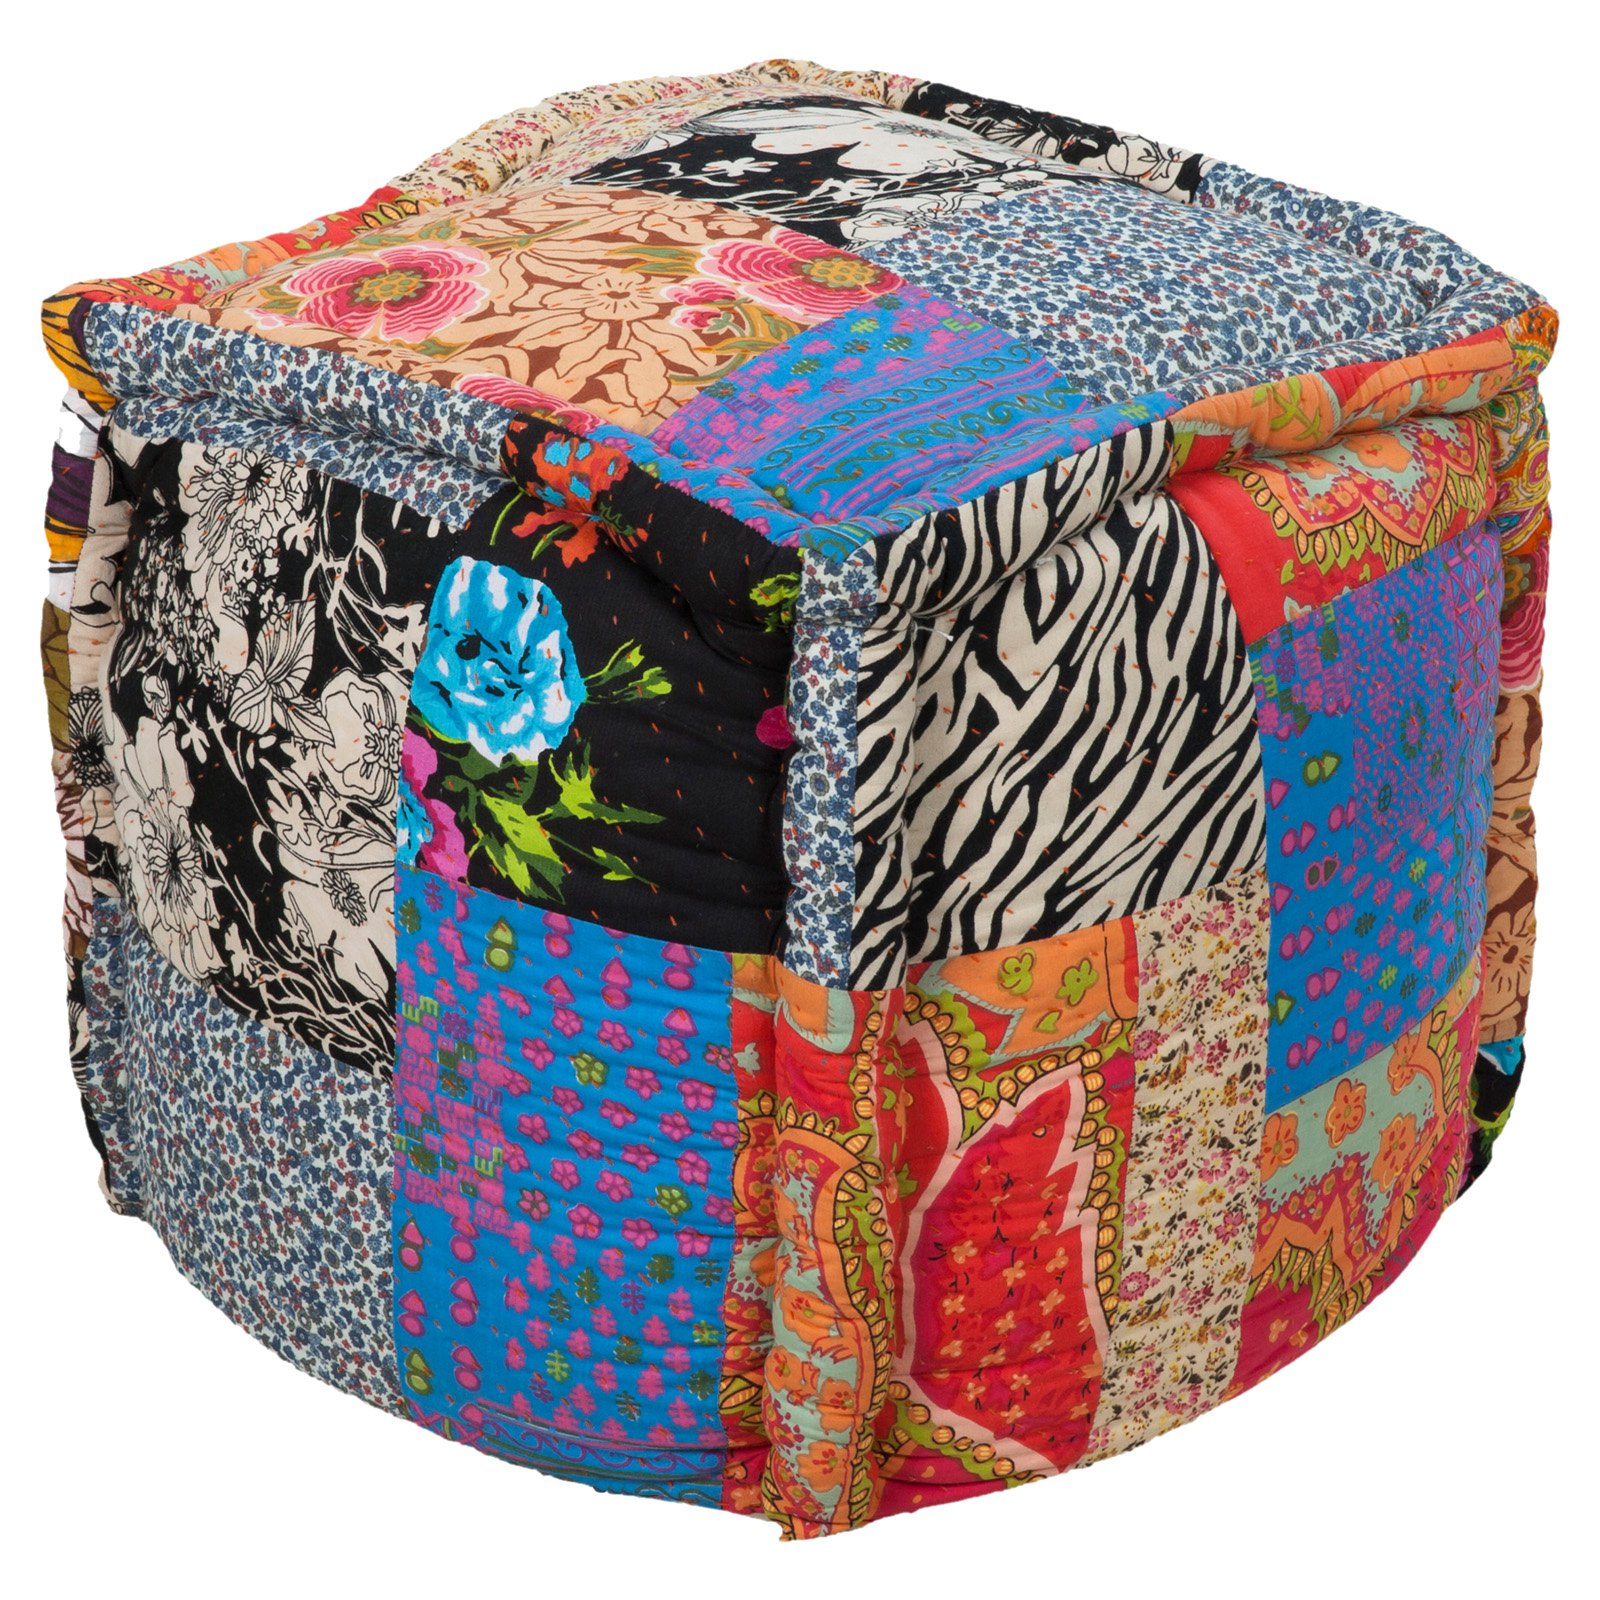 Surya 18 in. Patchwork Cube Cotton Pouf by Surya